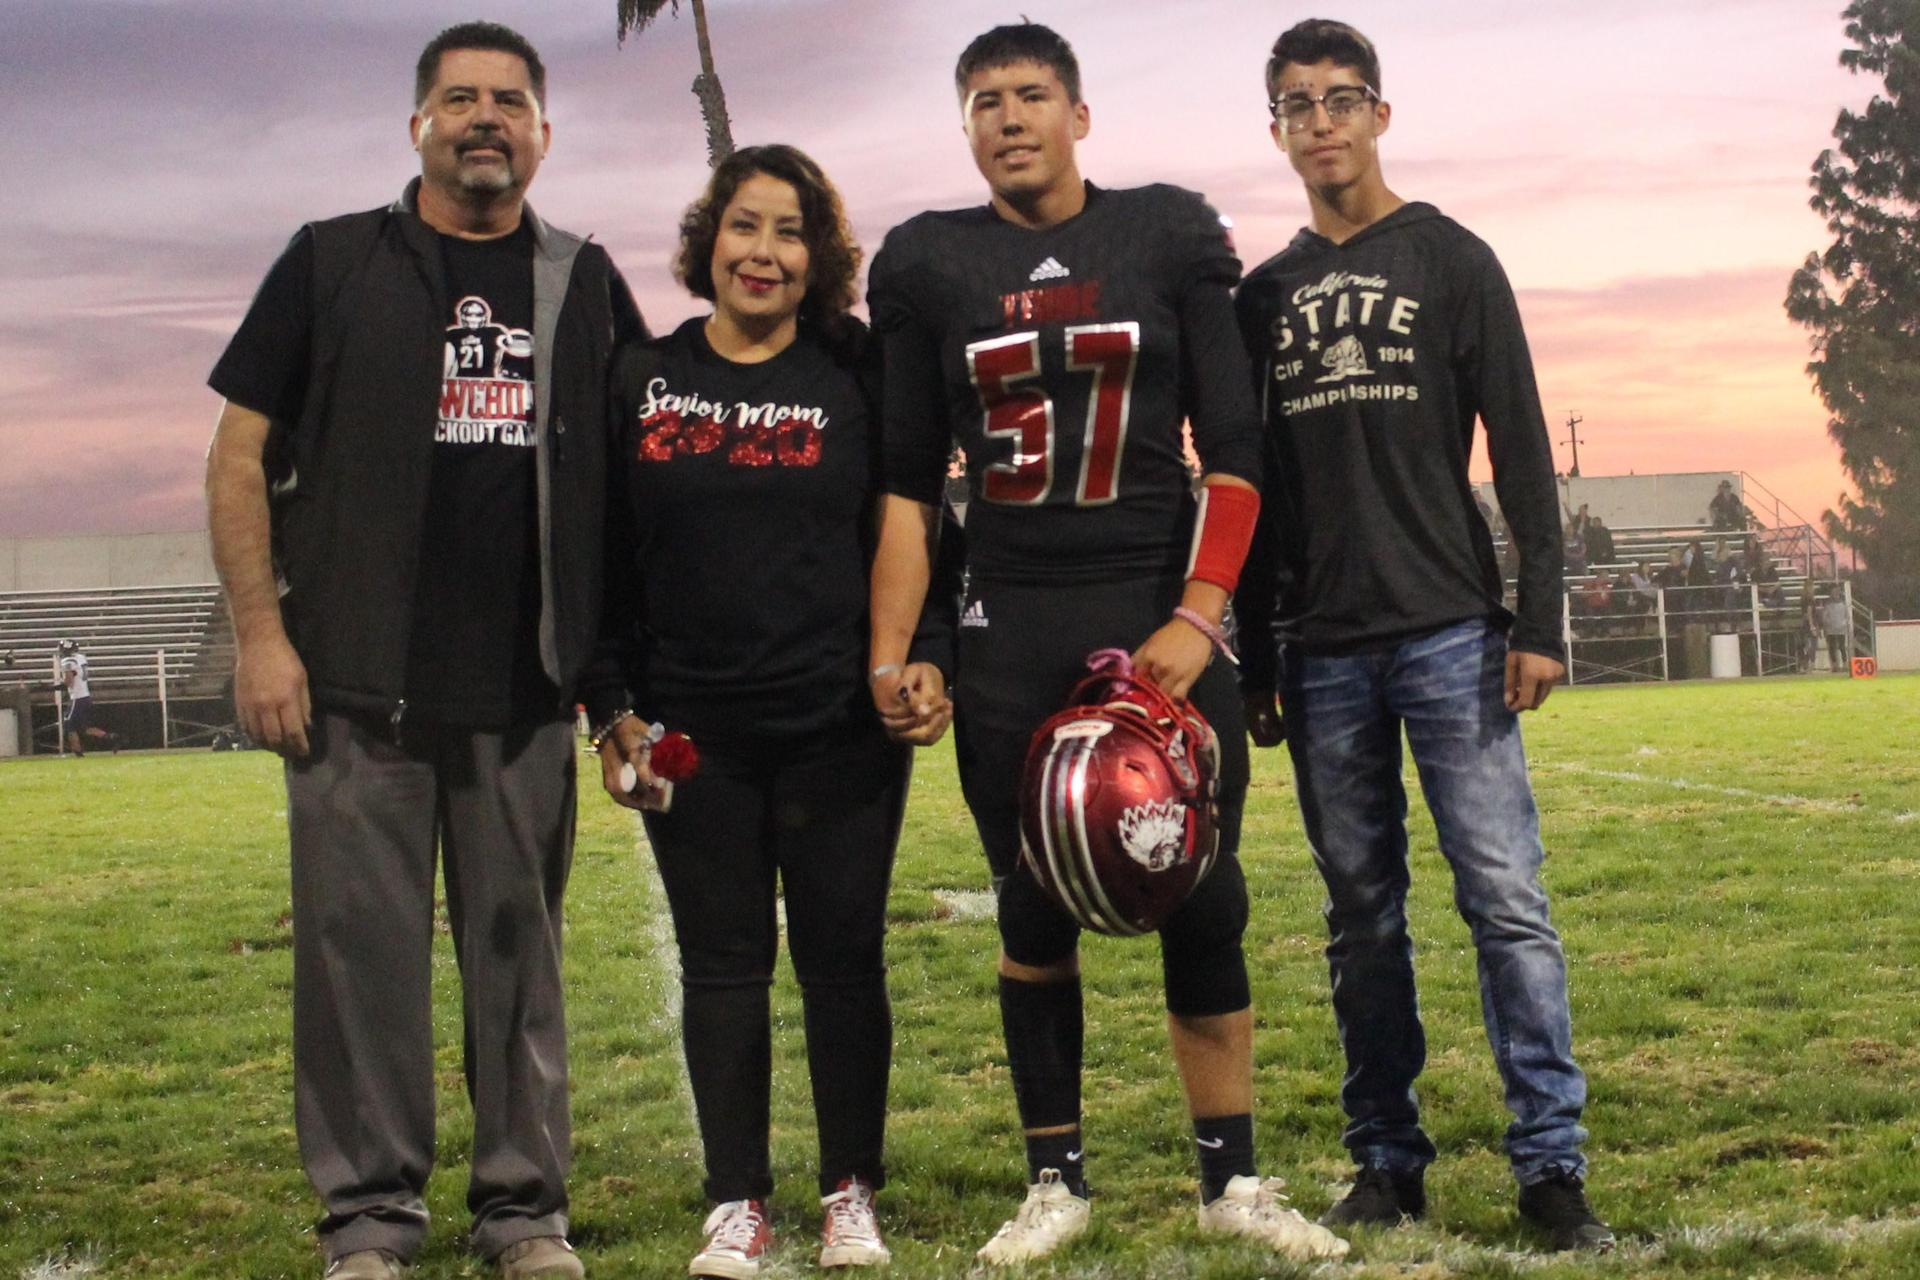 Senior football player Roman Diaz and his escorts.